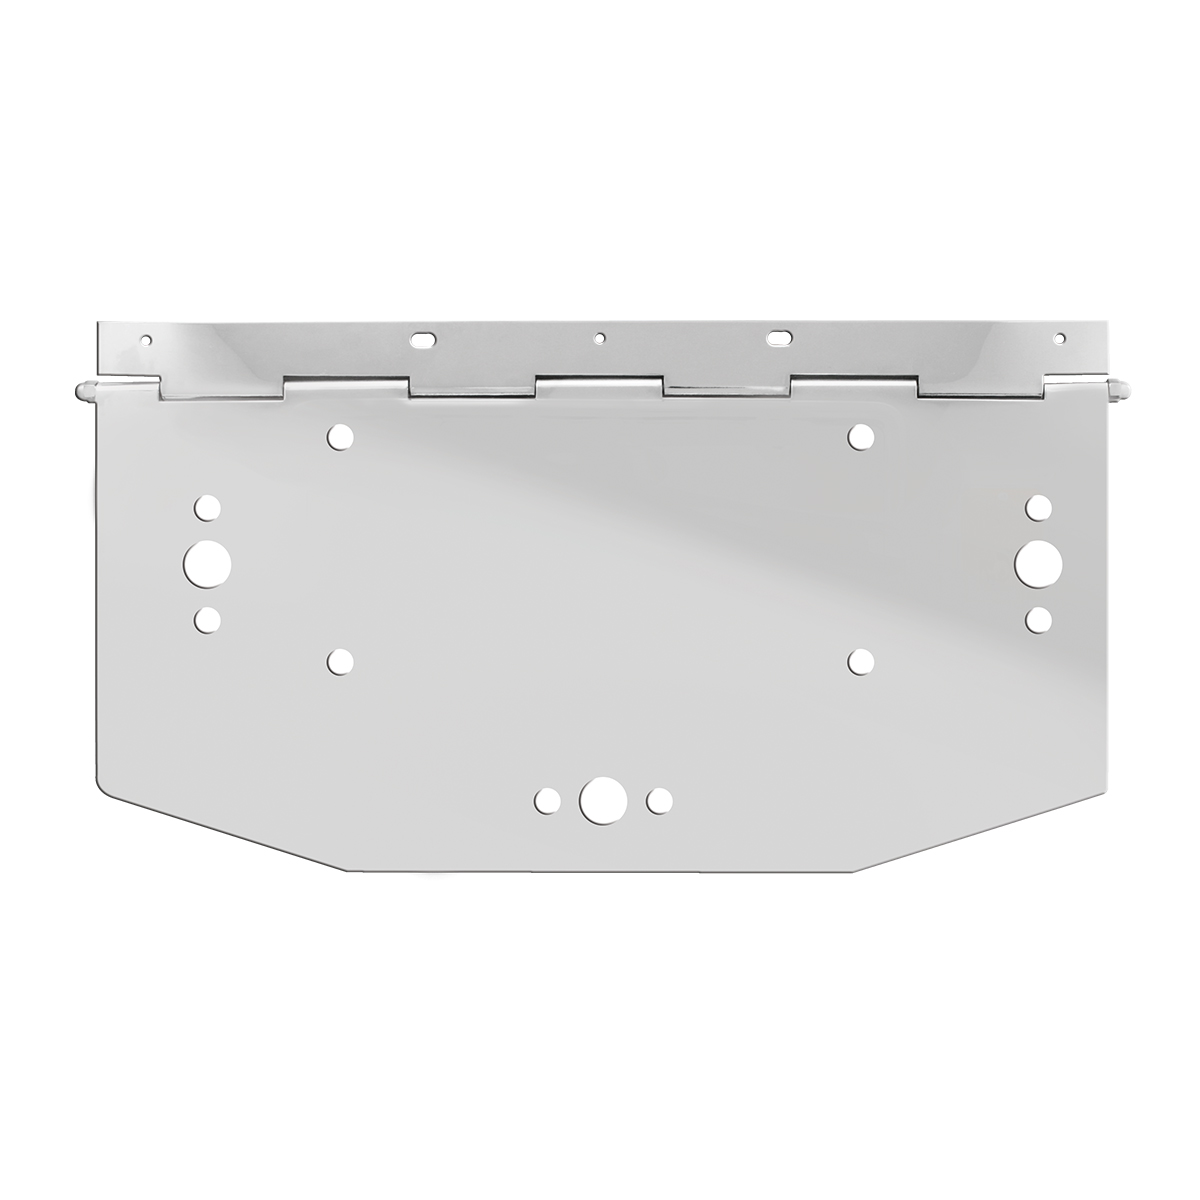 Stainless Steel License Plate Holder Only - 1 Frame